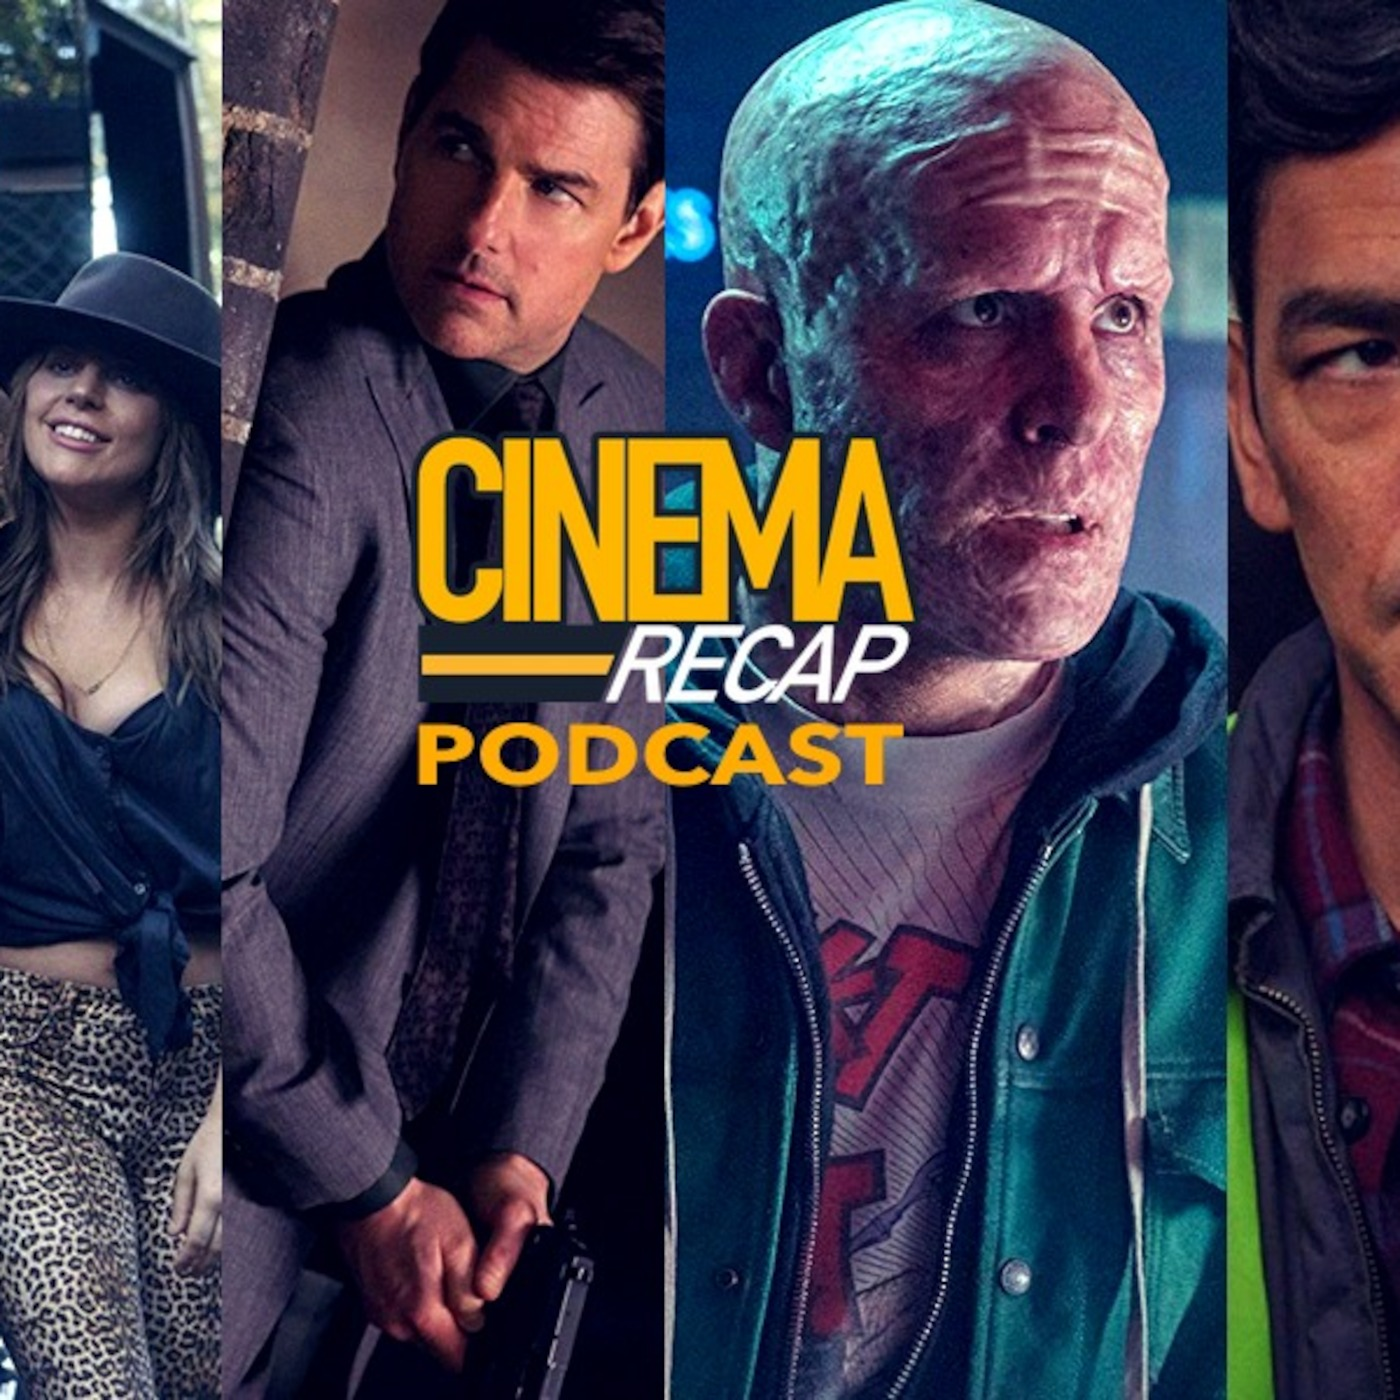 Cinema Recap Podcast: The Best Movies Of 2018 That Moment In com podcast